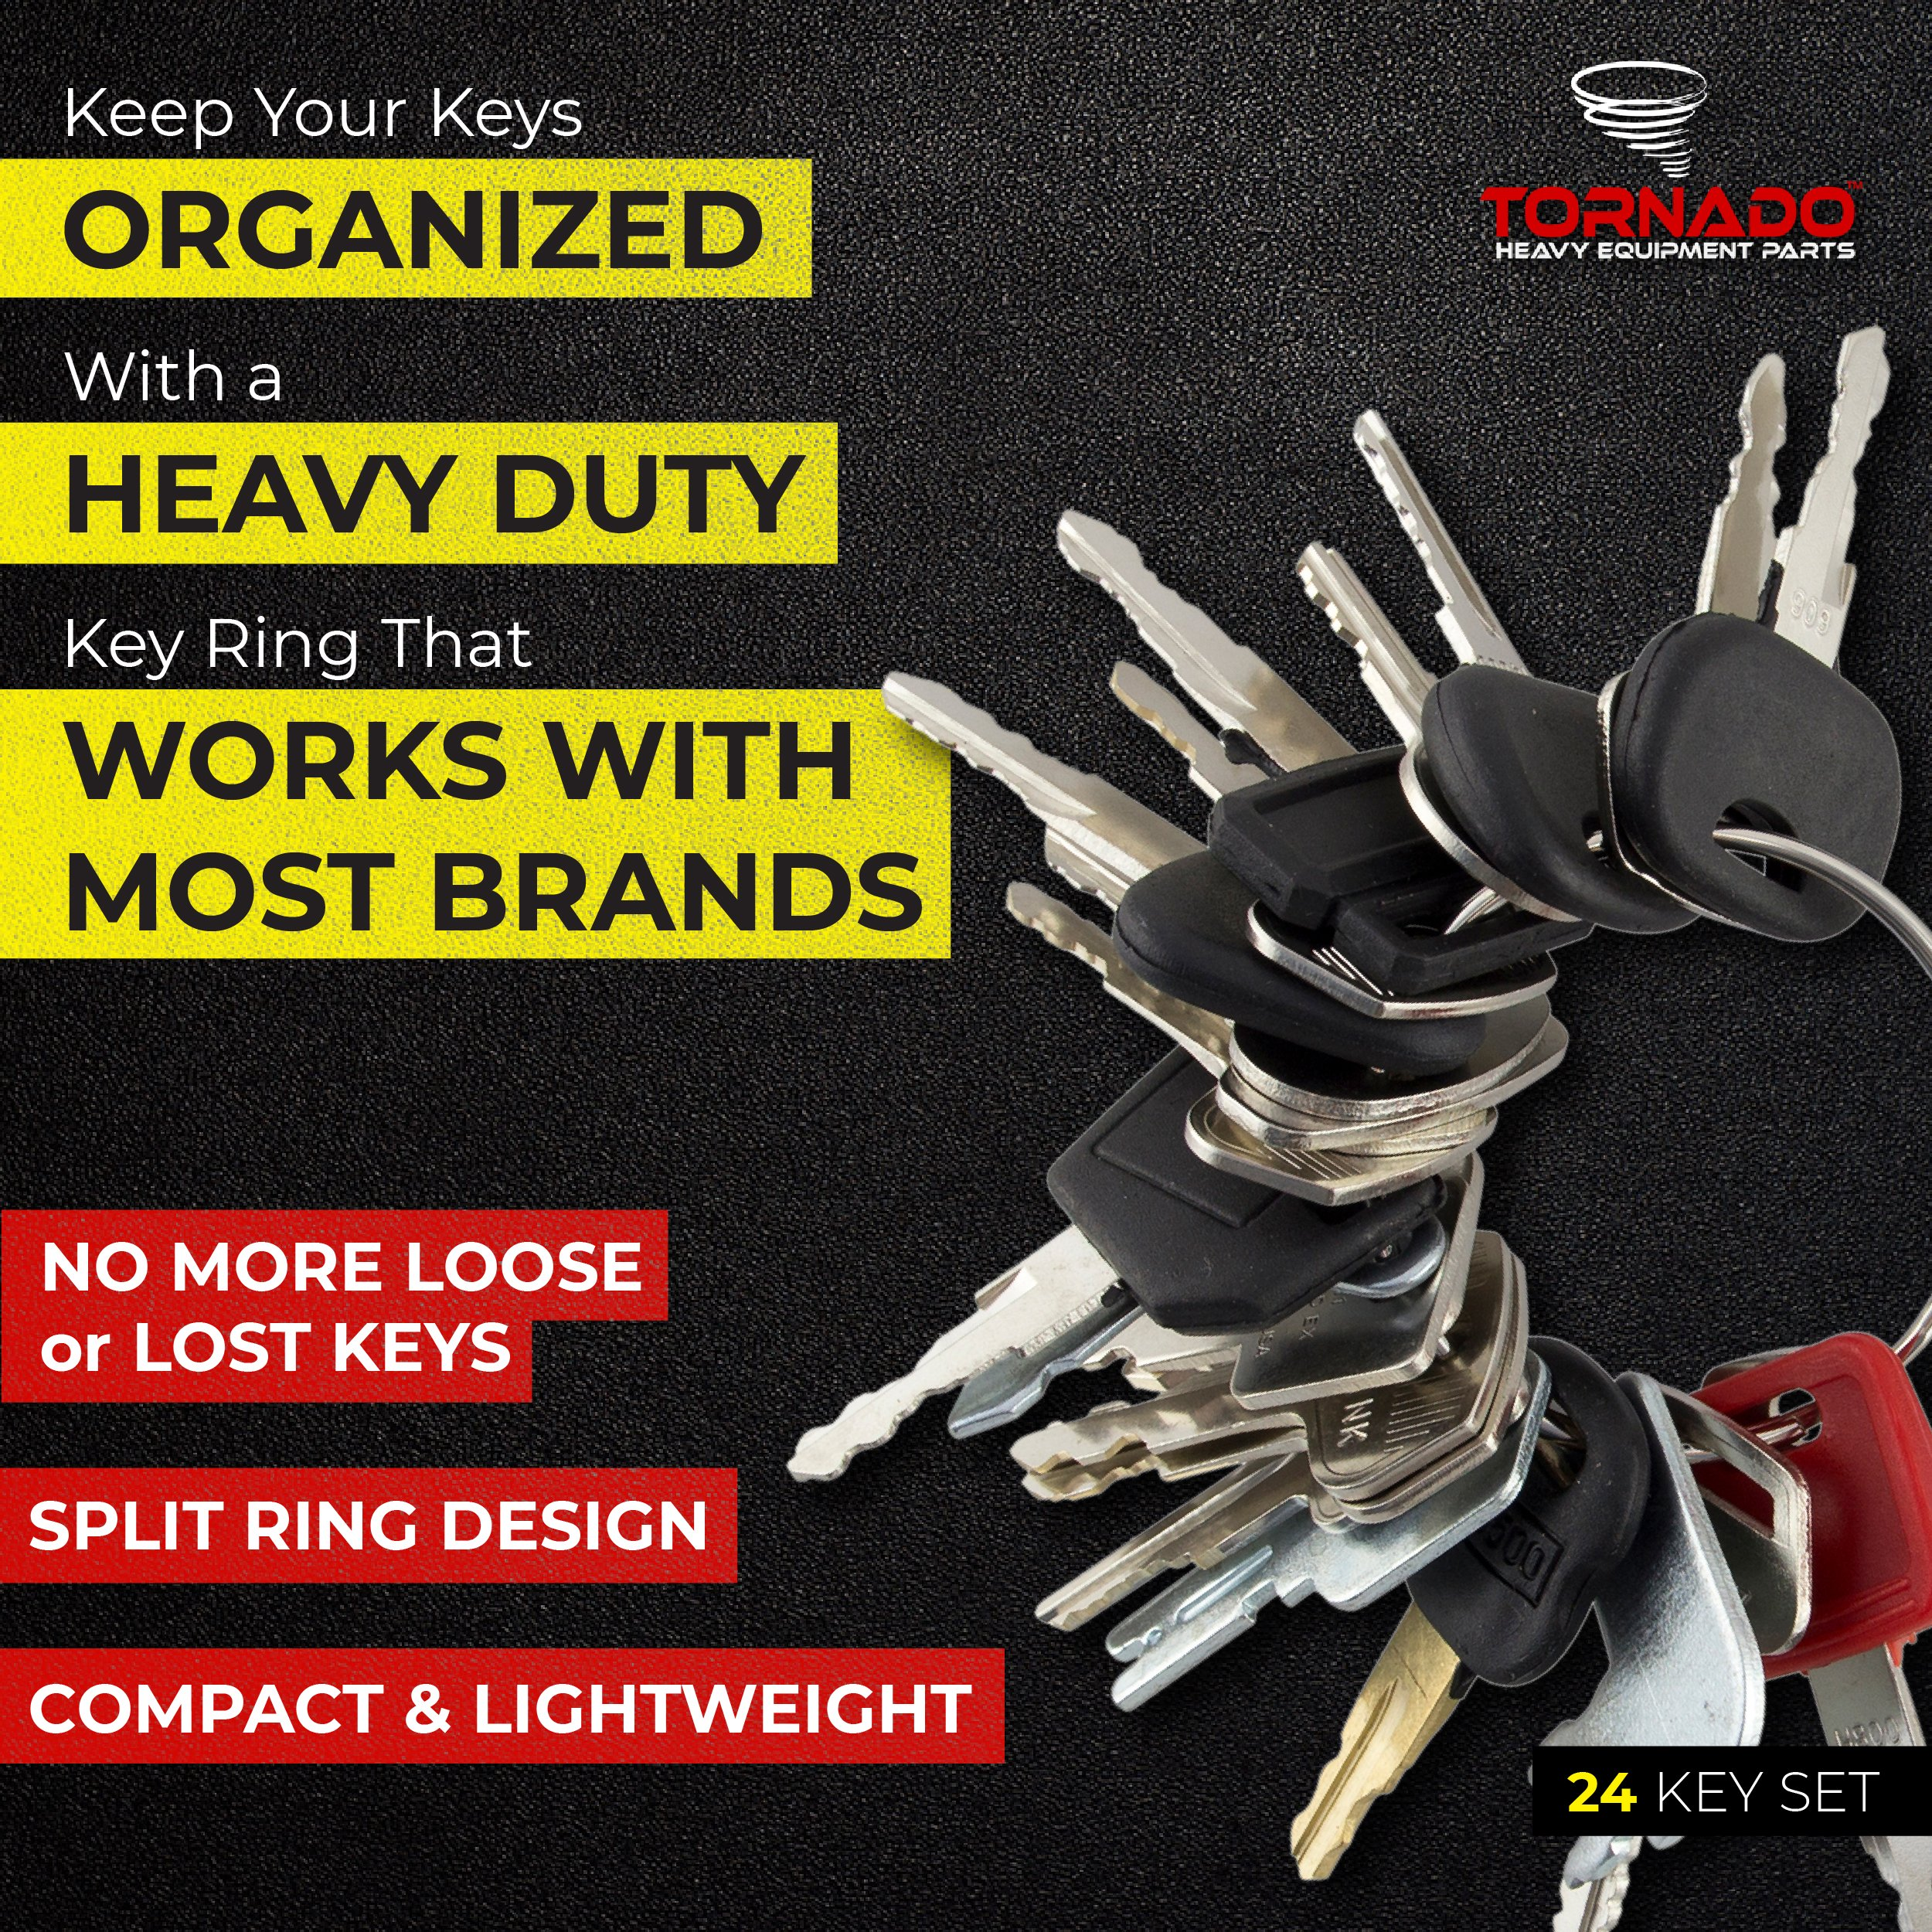 TORNADO HEAVY EQUIPMENT PARTS 21-36 CONSTRUCTION IGNITION KEY SETS - Comes in sets of 21, 24, 27, 30, 33, 36, for backhoes, tools, case, cat, etc. See product description for more info (24 Key Set) by TORNADO HEAVY EQUIPMENT PARTS (Image #7)